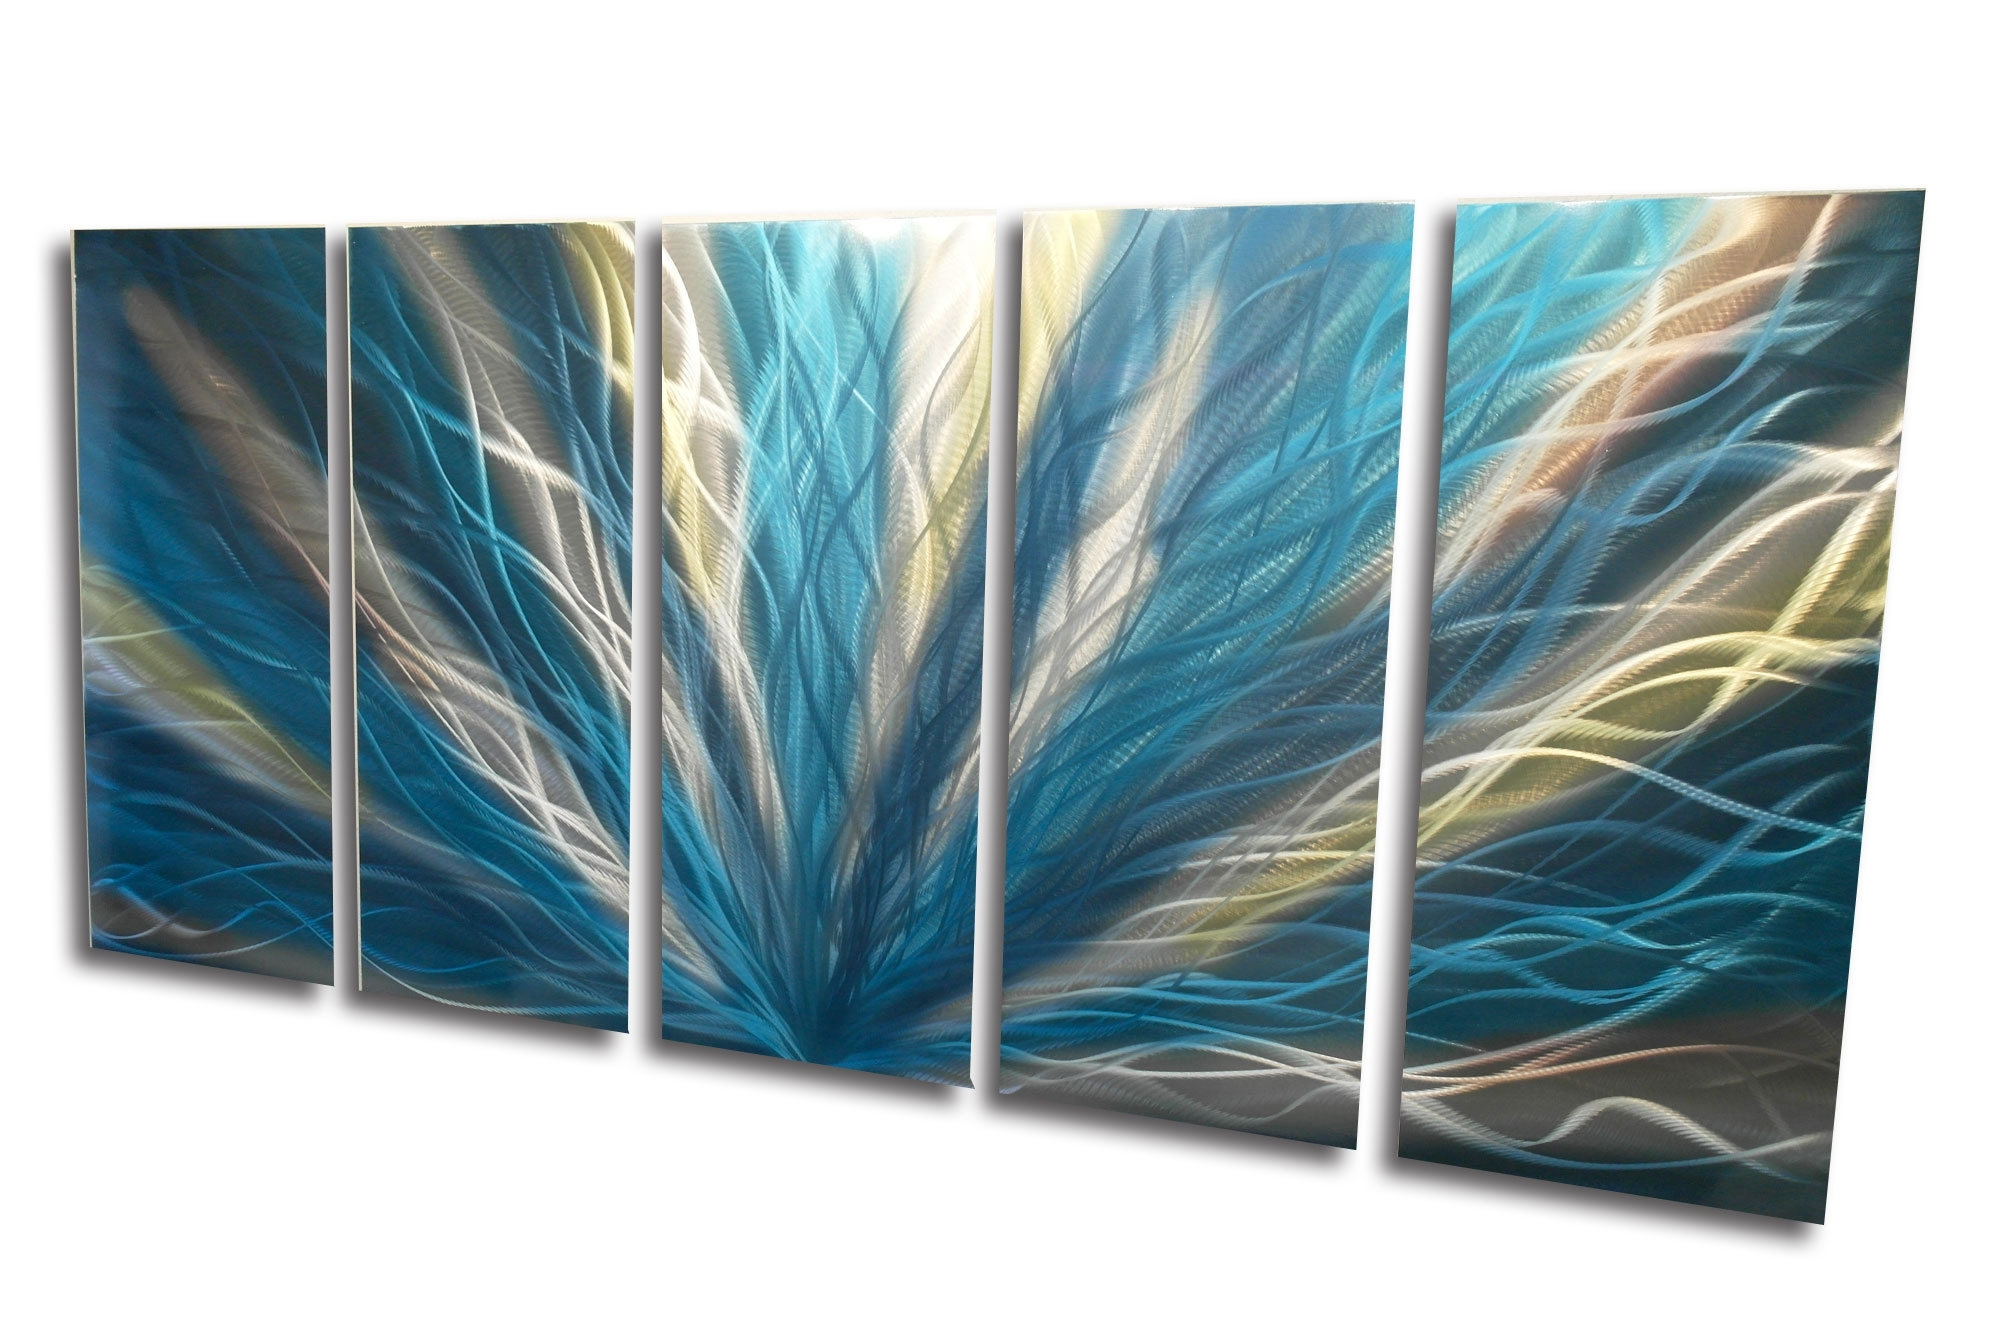 2017 Brown And Turquoise Wall Art With Radiance Teal 36x79 – Metal Wall Art Abstract Sculpture Modern (View 6 of 15)